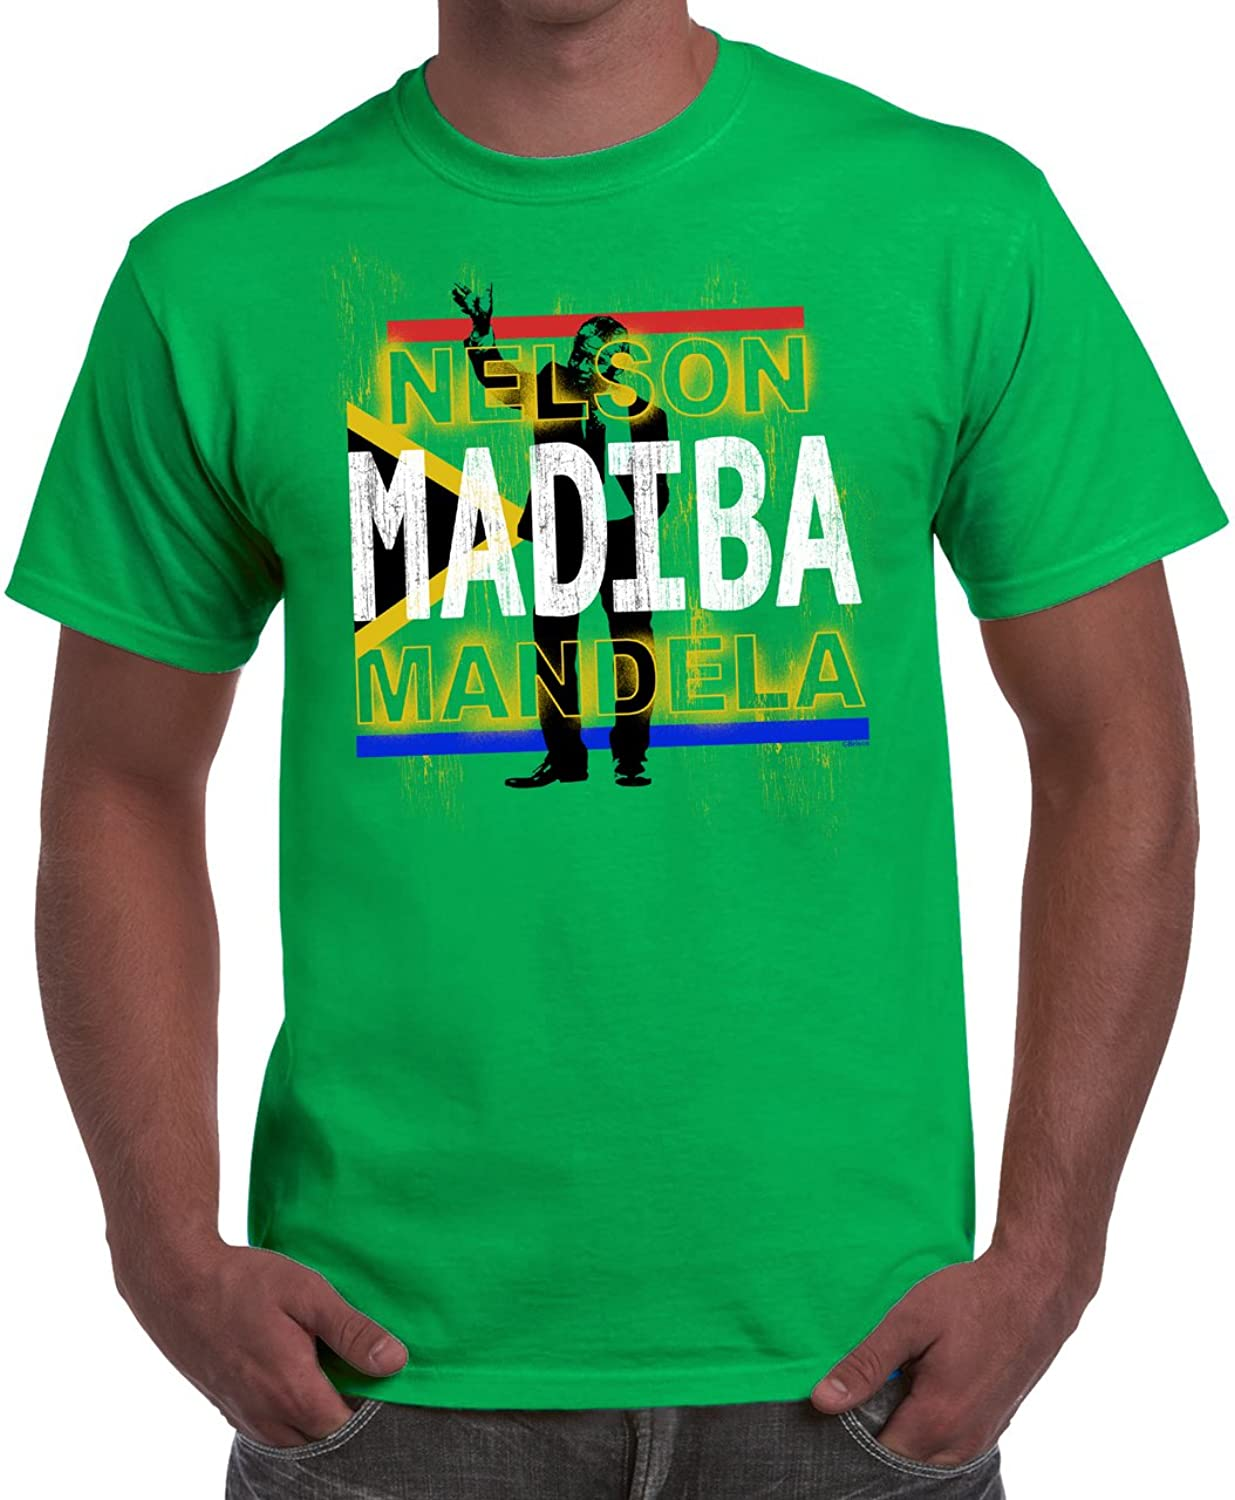 Rest In Peace Nelson Mandela Black History Month BHM Shirt MLK T-Shirt Tee